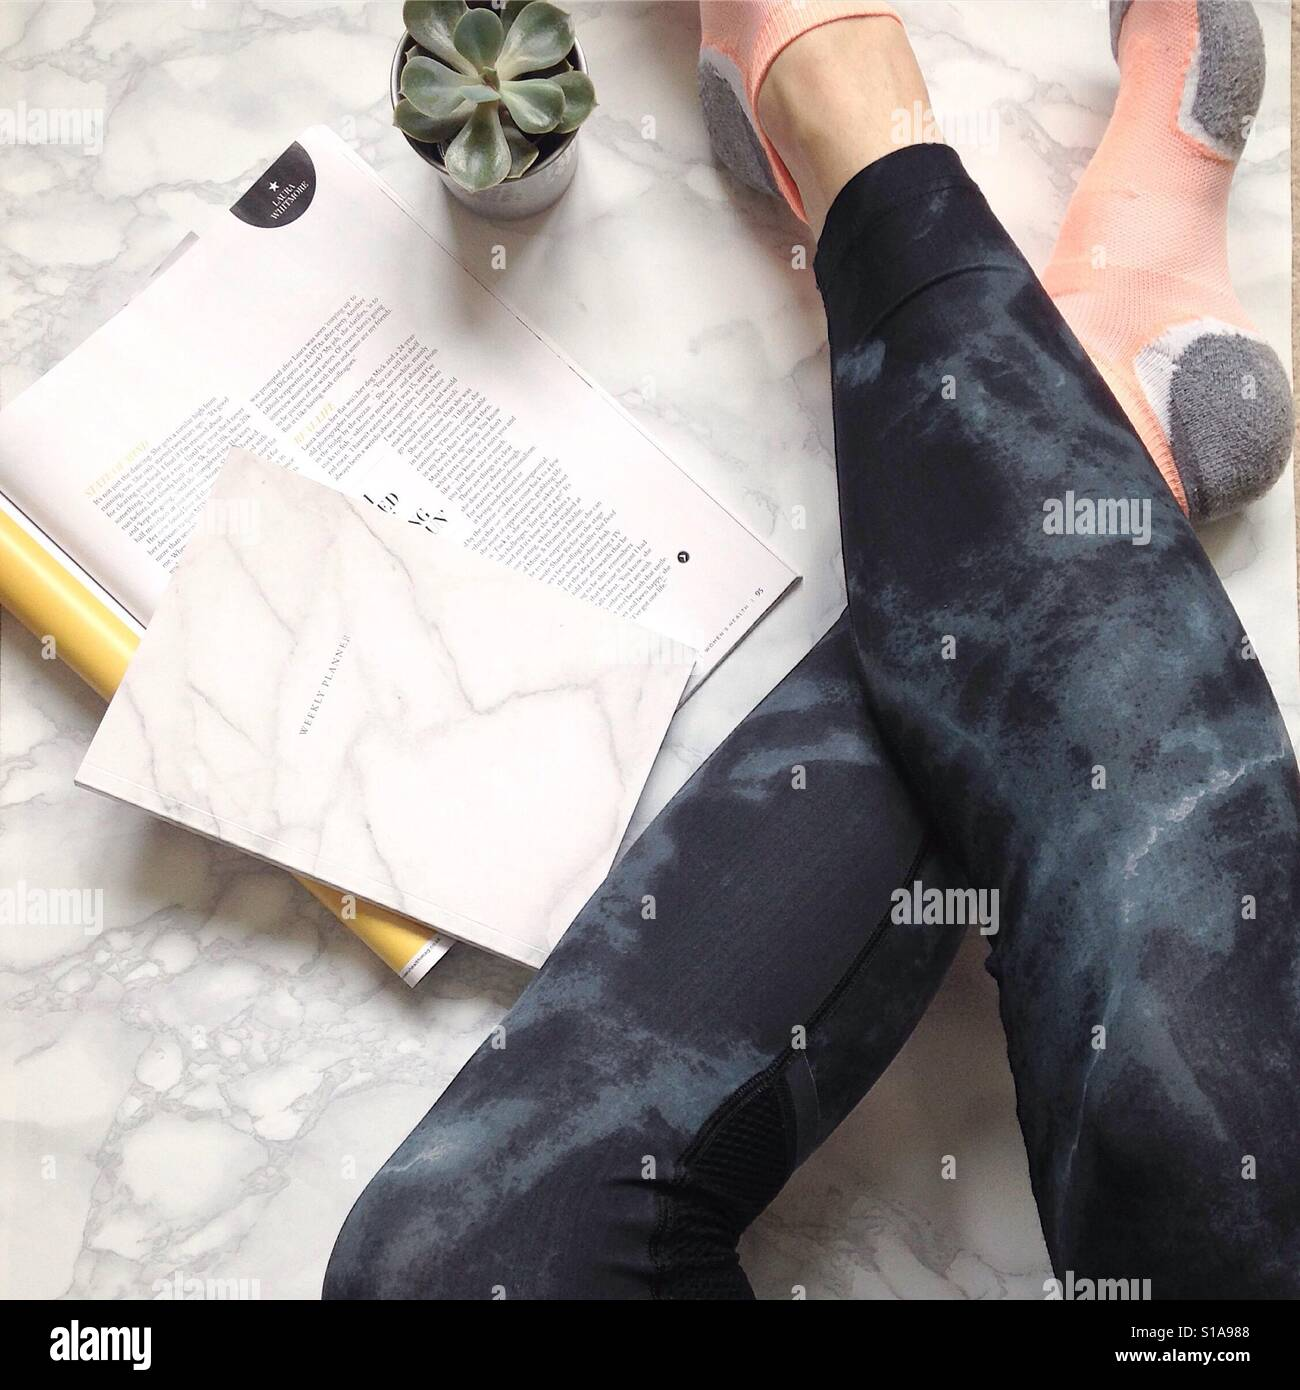 Relaxing and reading in leggings on a marble floor - Stock Image